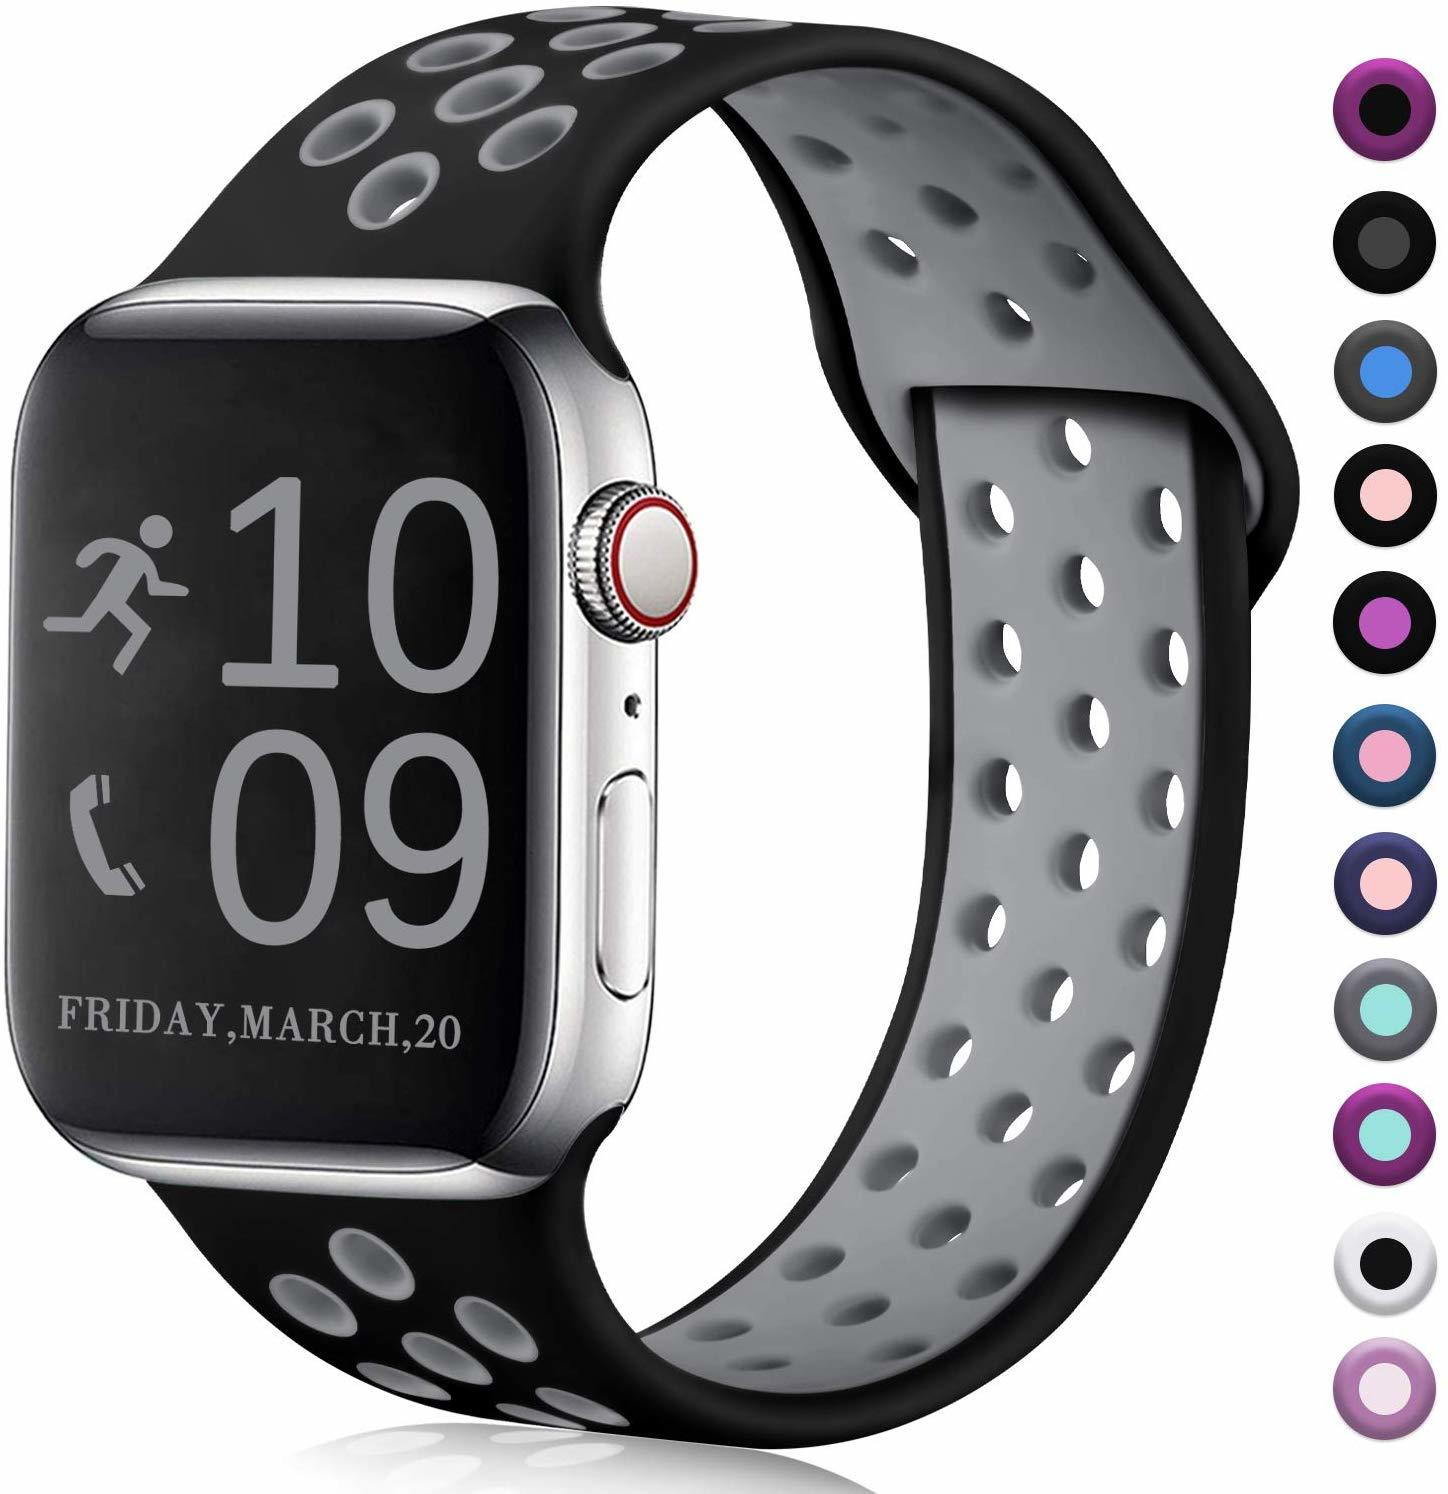 Ape Basics: Replacement Sport Band for Apple Watch - Black/Gray (42mm/44mm, 220mm) image